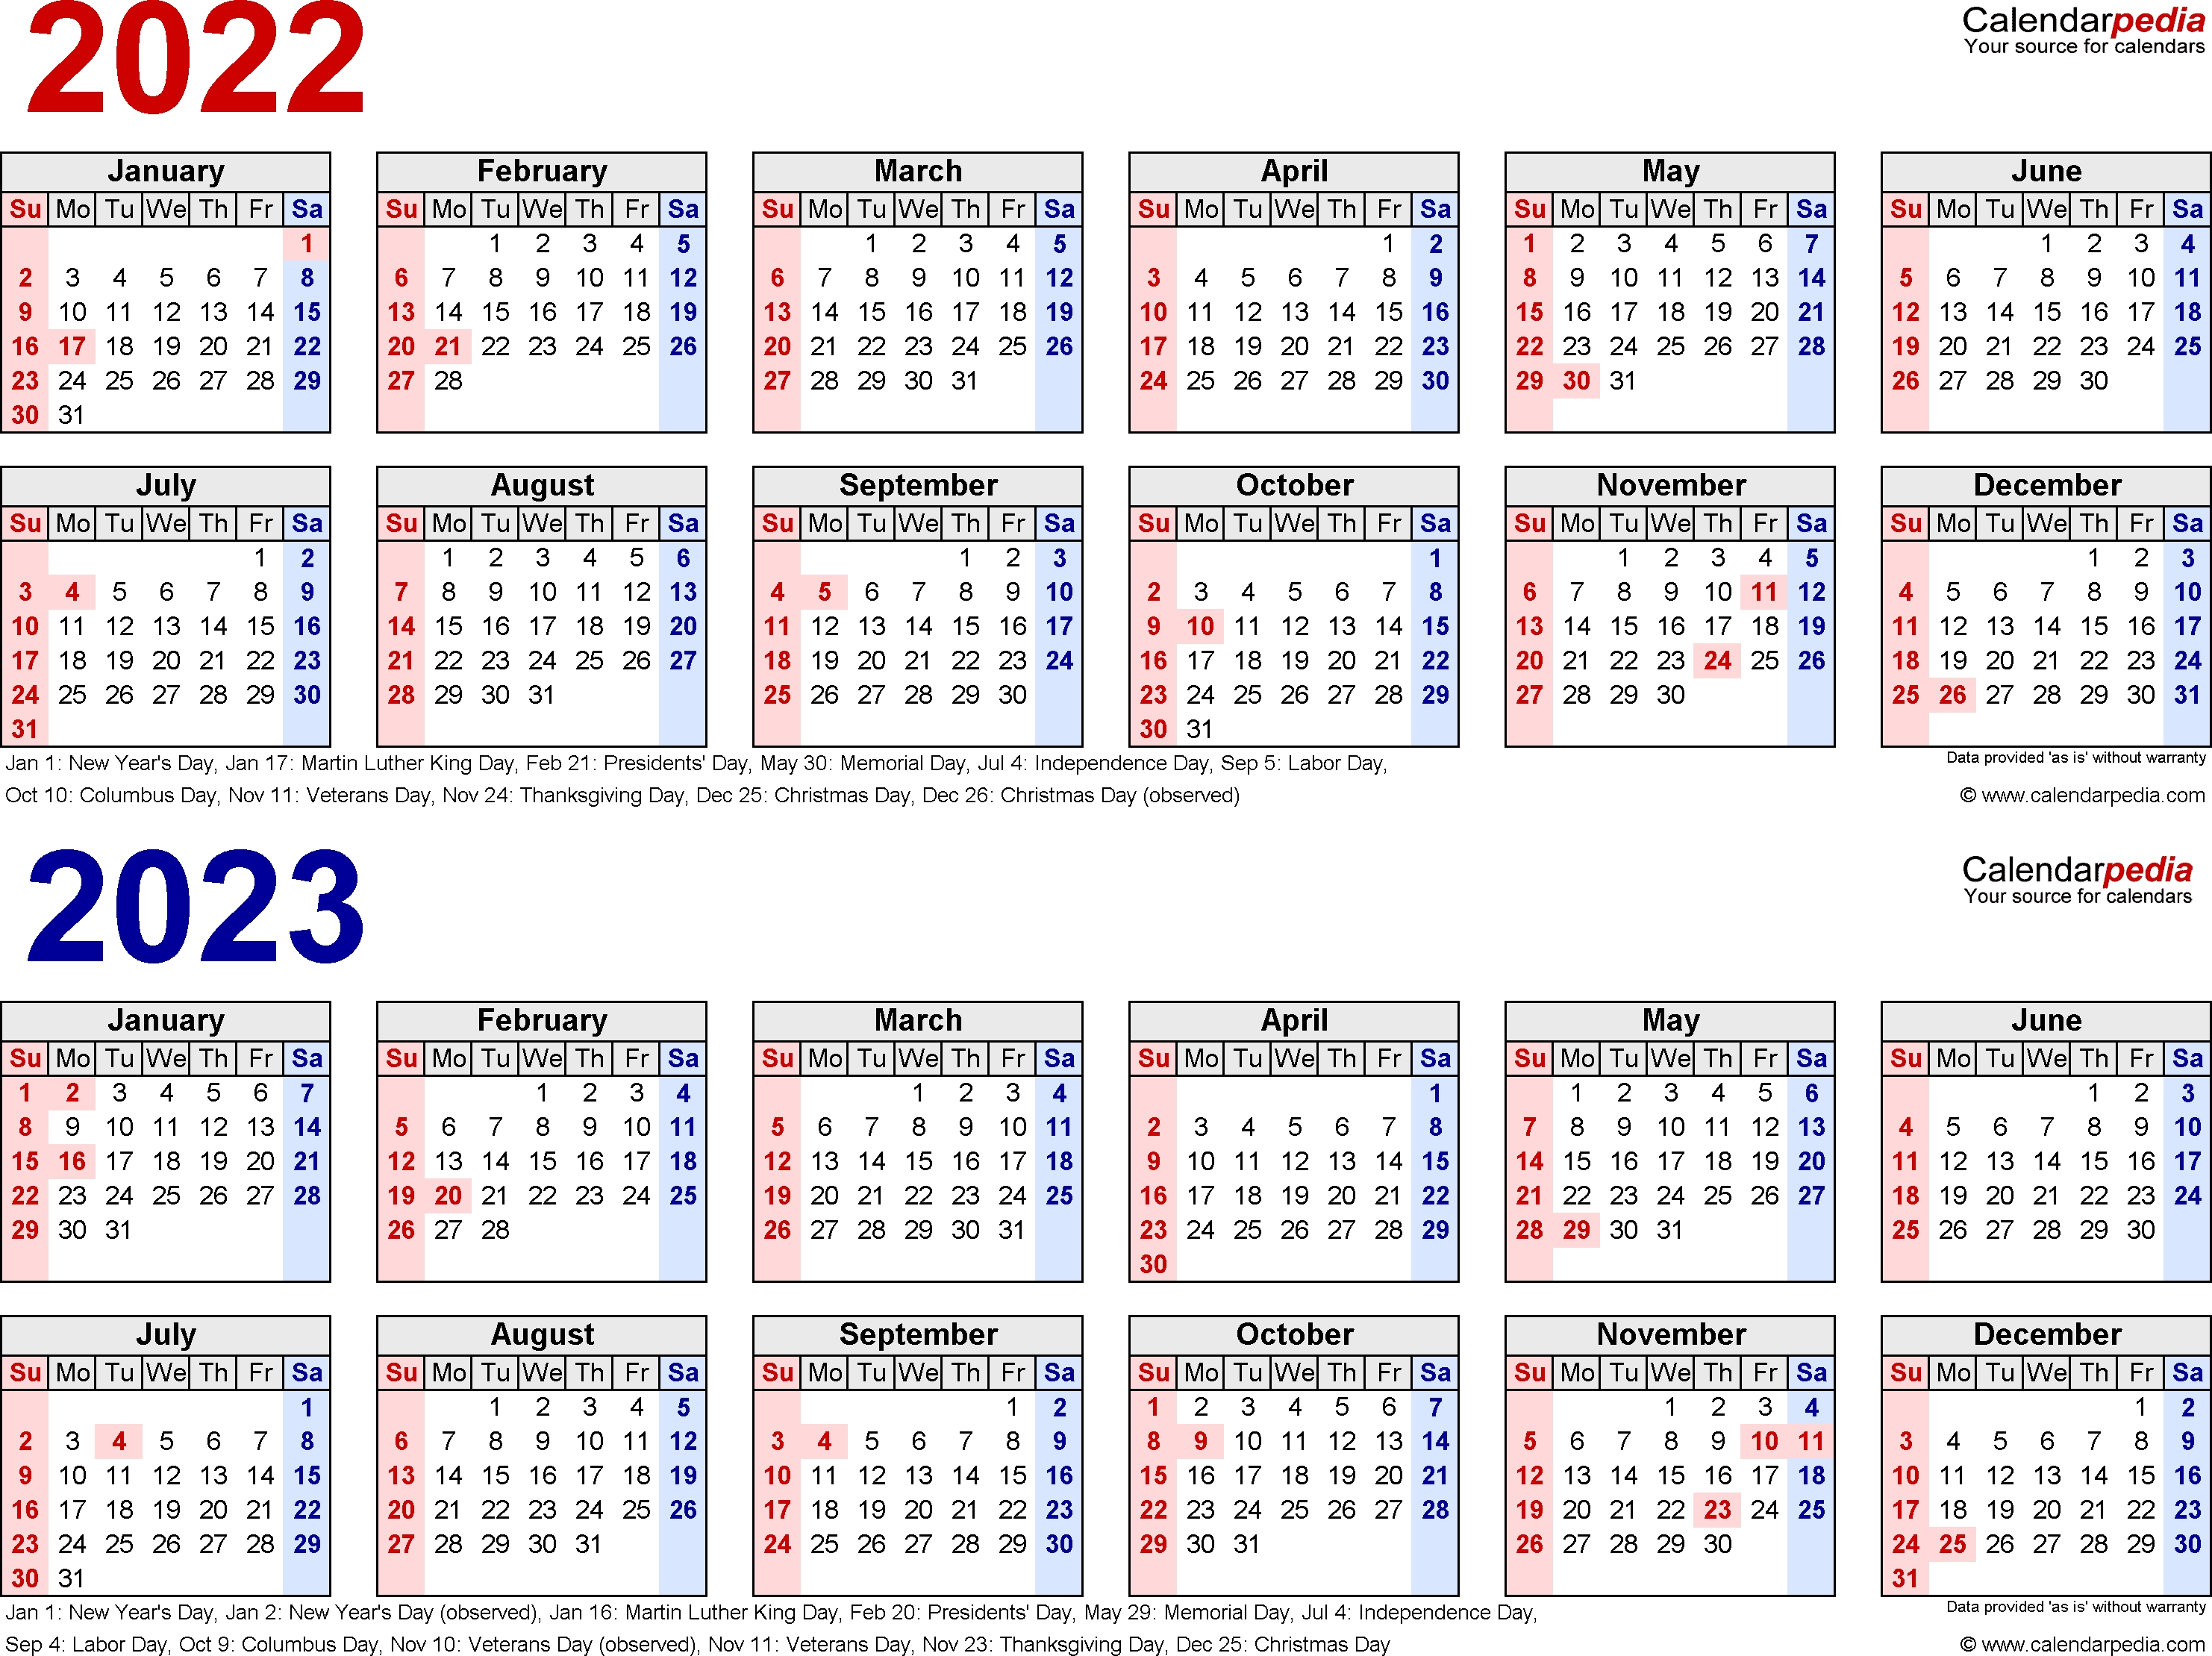 2022-2023 Two Year Calendar - Free Printable Excel Templates